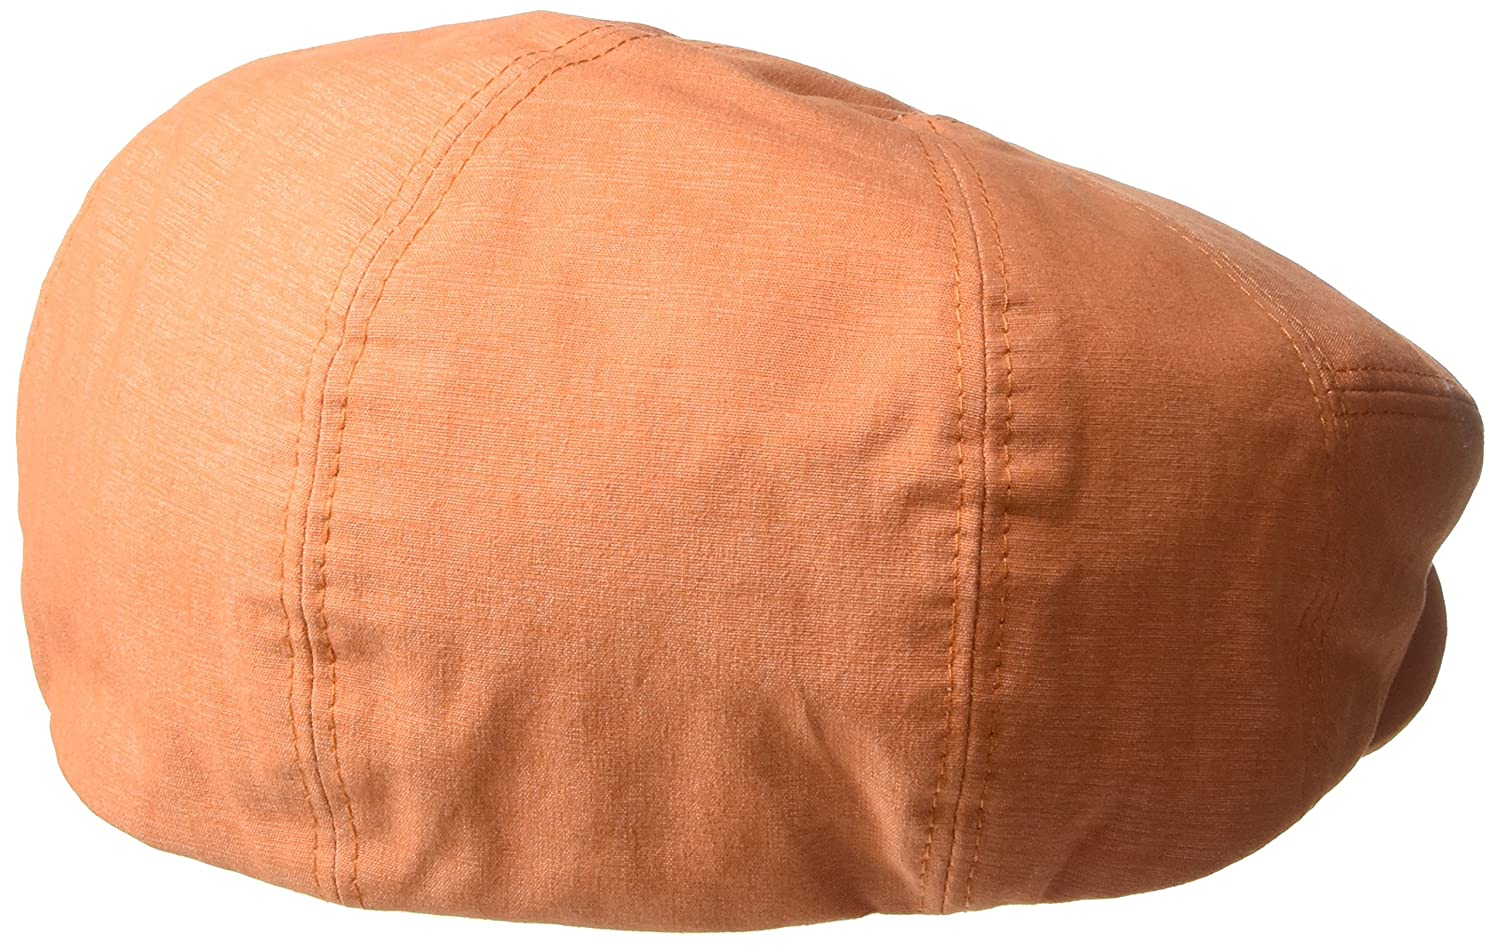 ccb36e3dab7f Bailey of Hollywood Men's Keter Ivy Cap at Amazon Men's Clothing store: